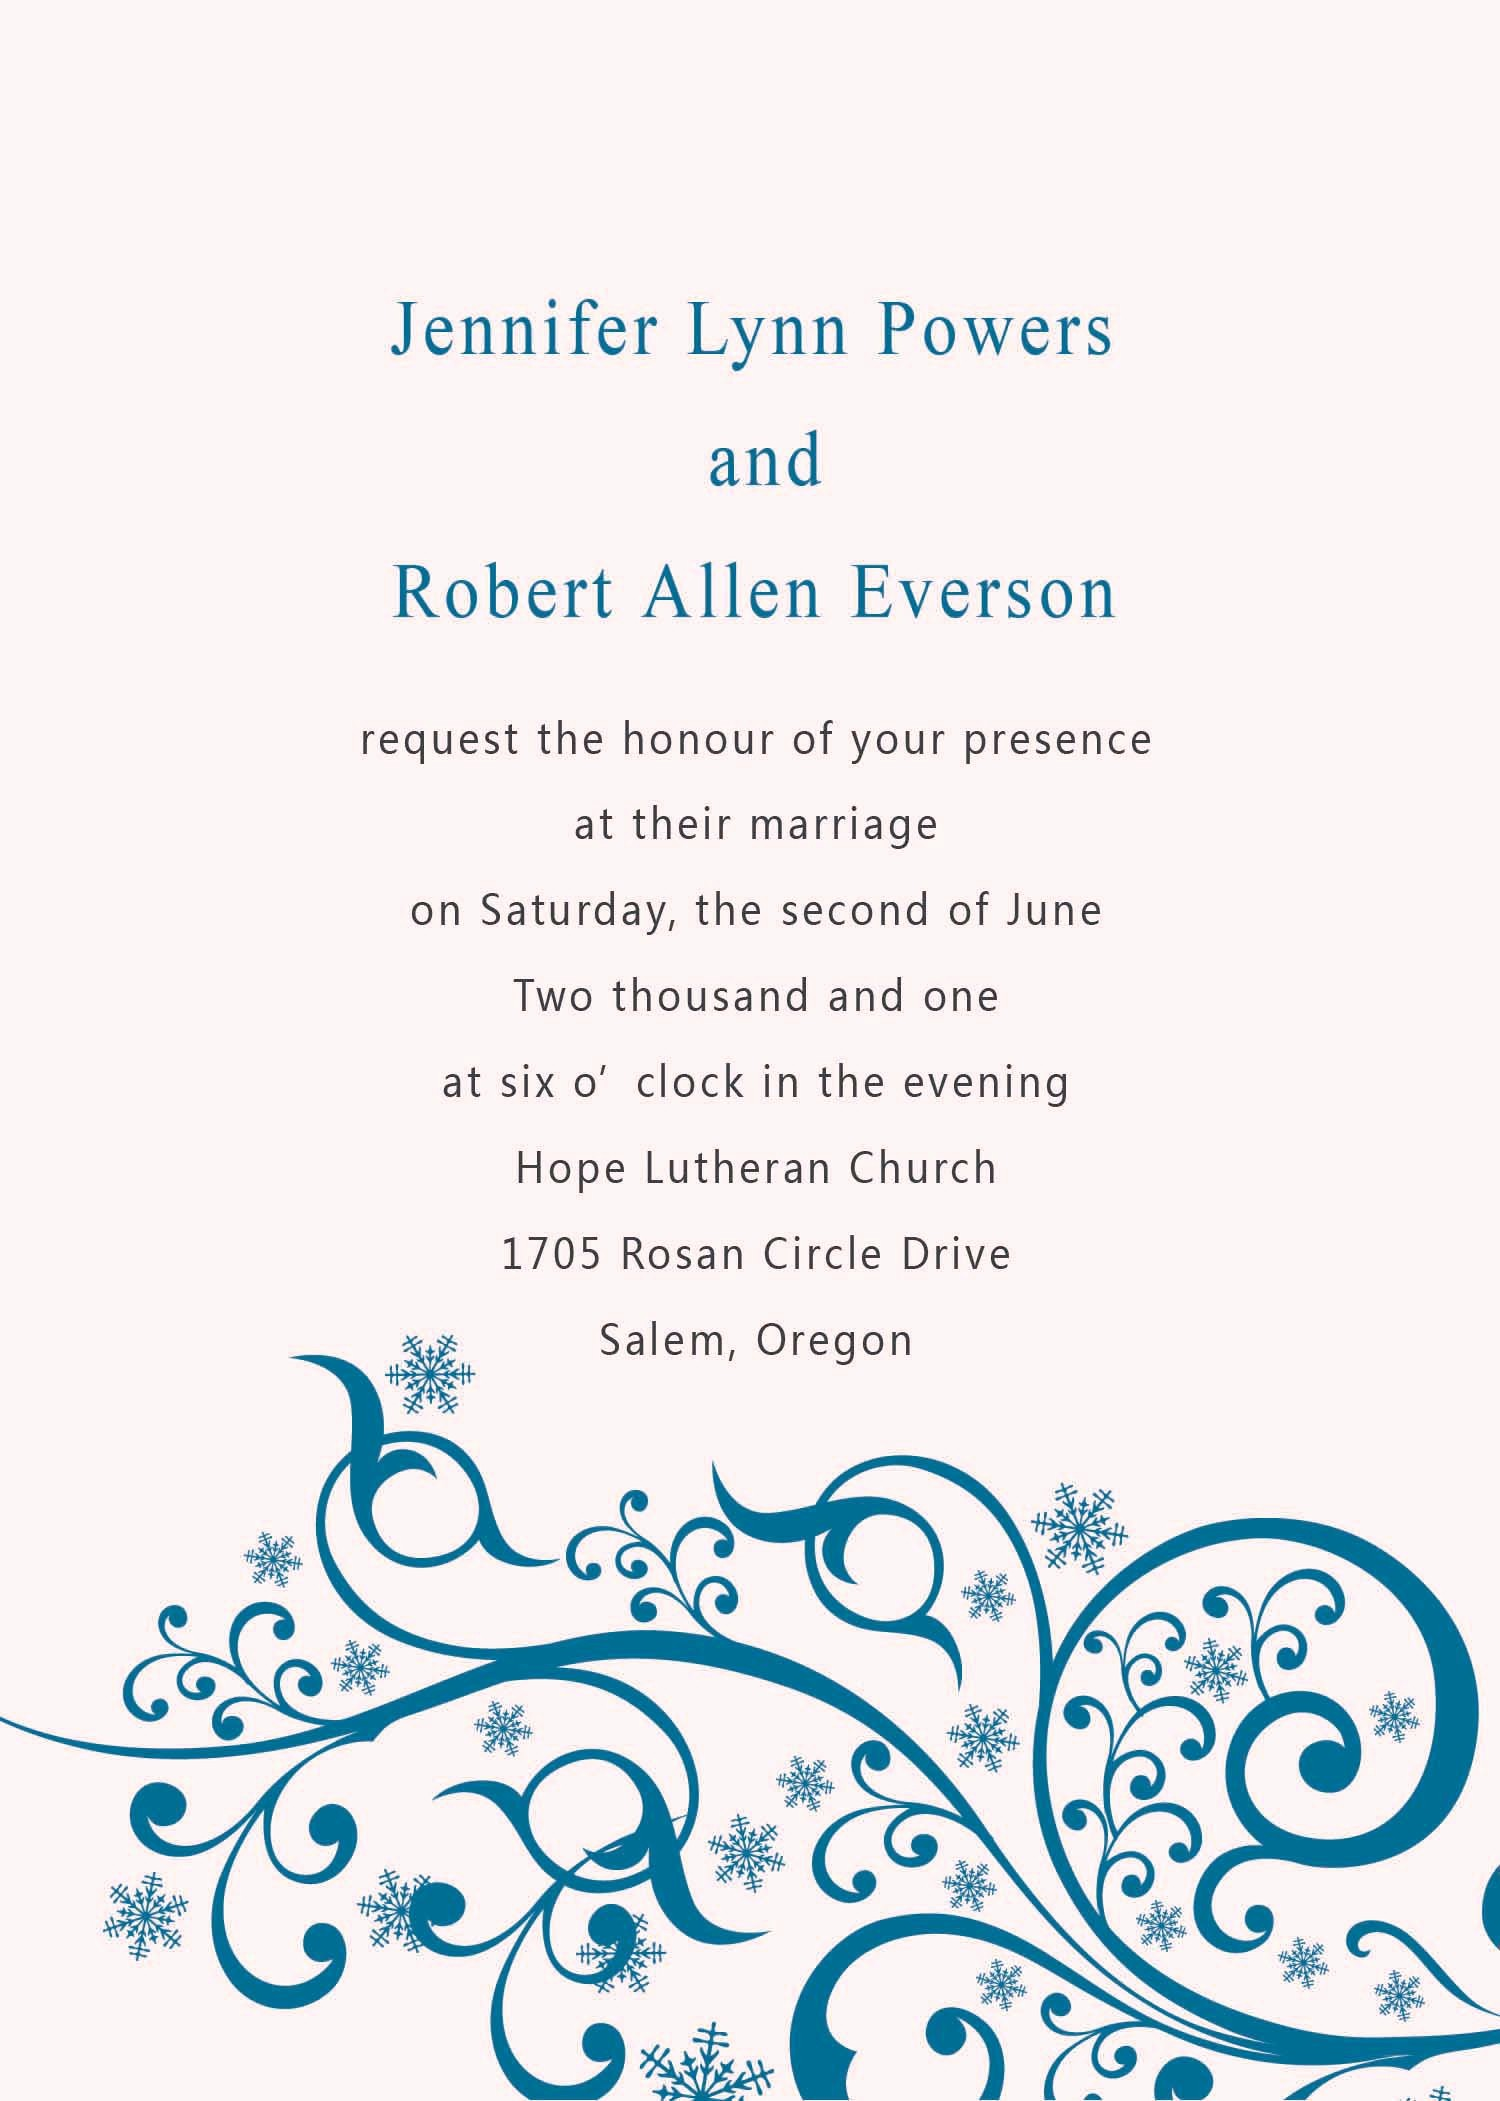 Wedding Invitations Templates Word Free Inspirational Engagement Party Invitation Word Templates Free Card